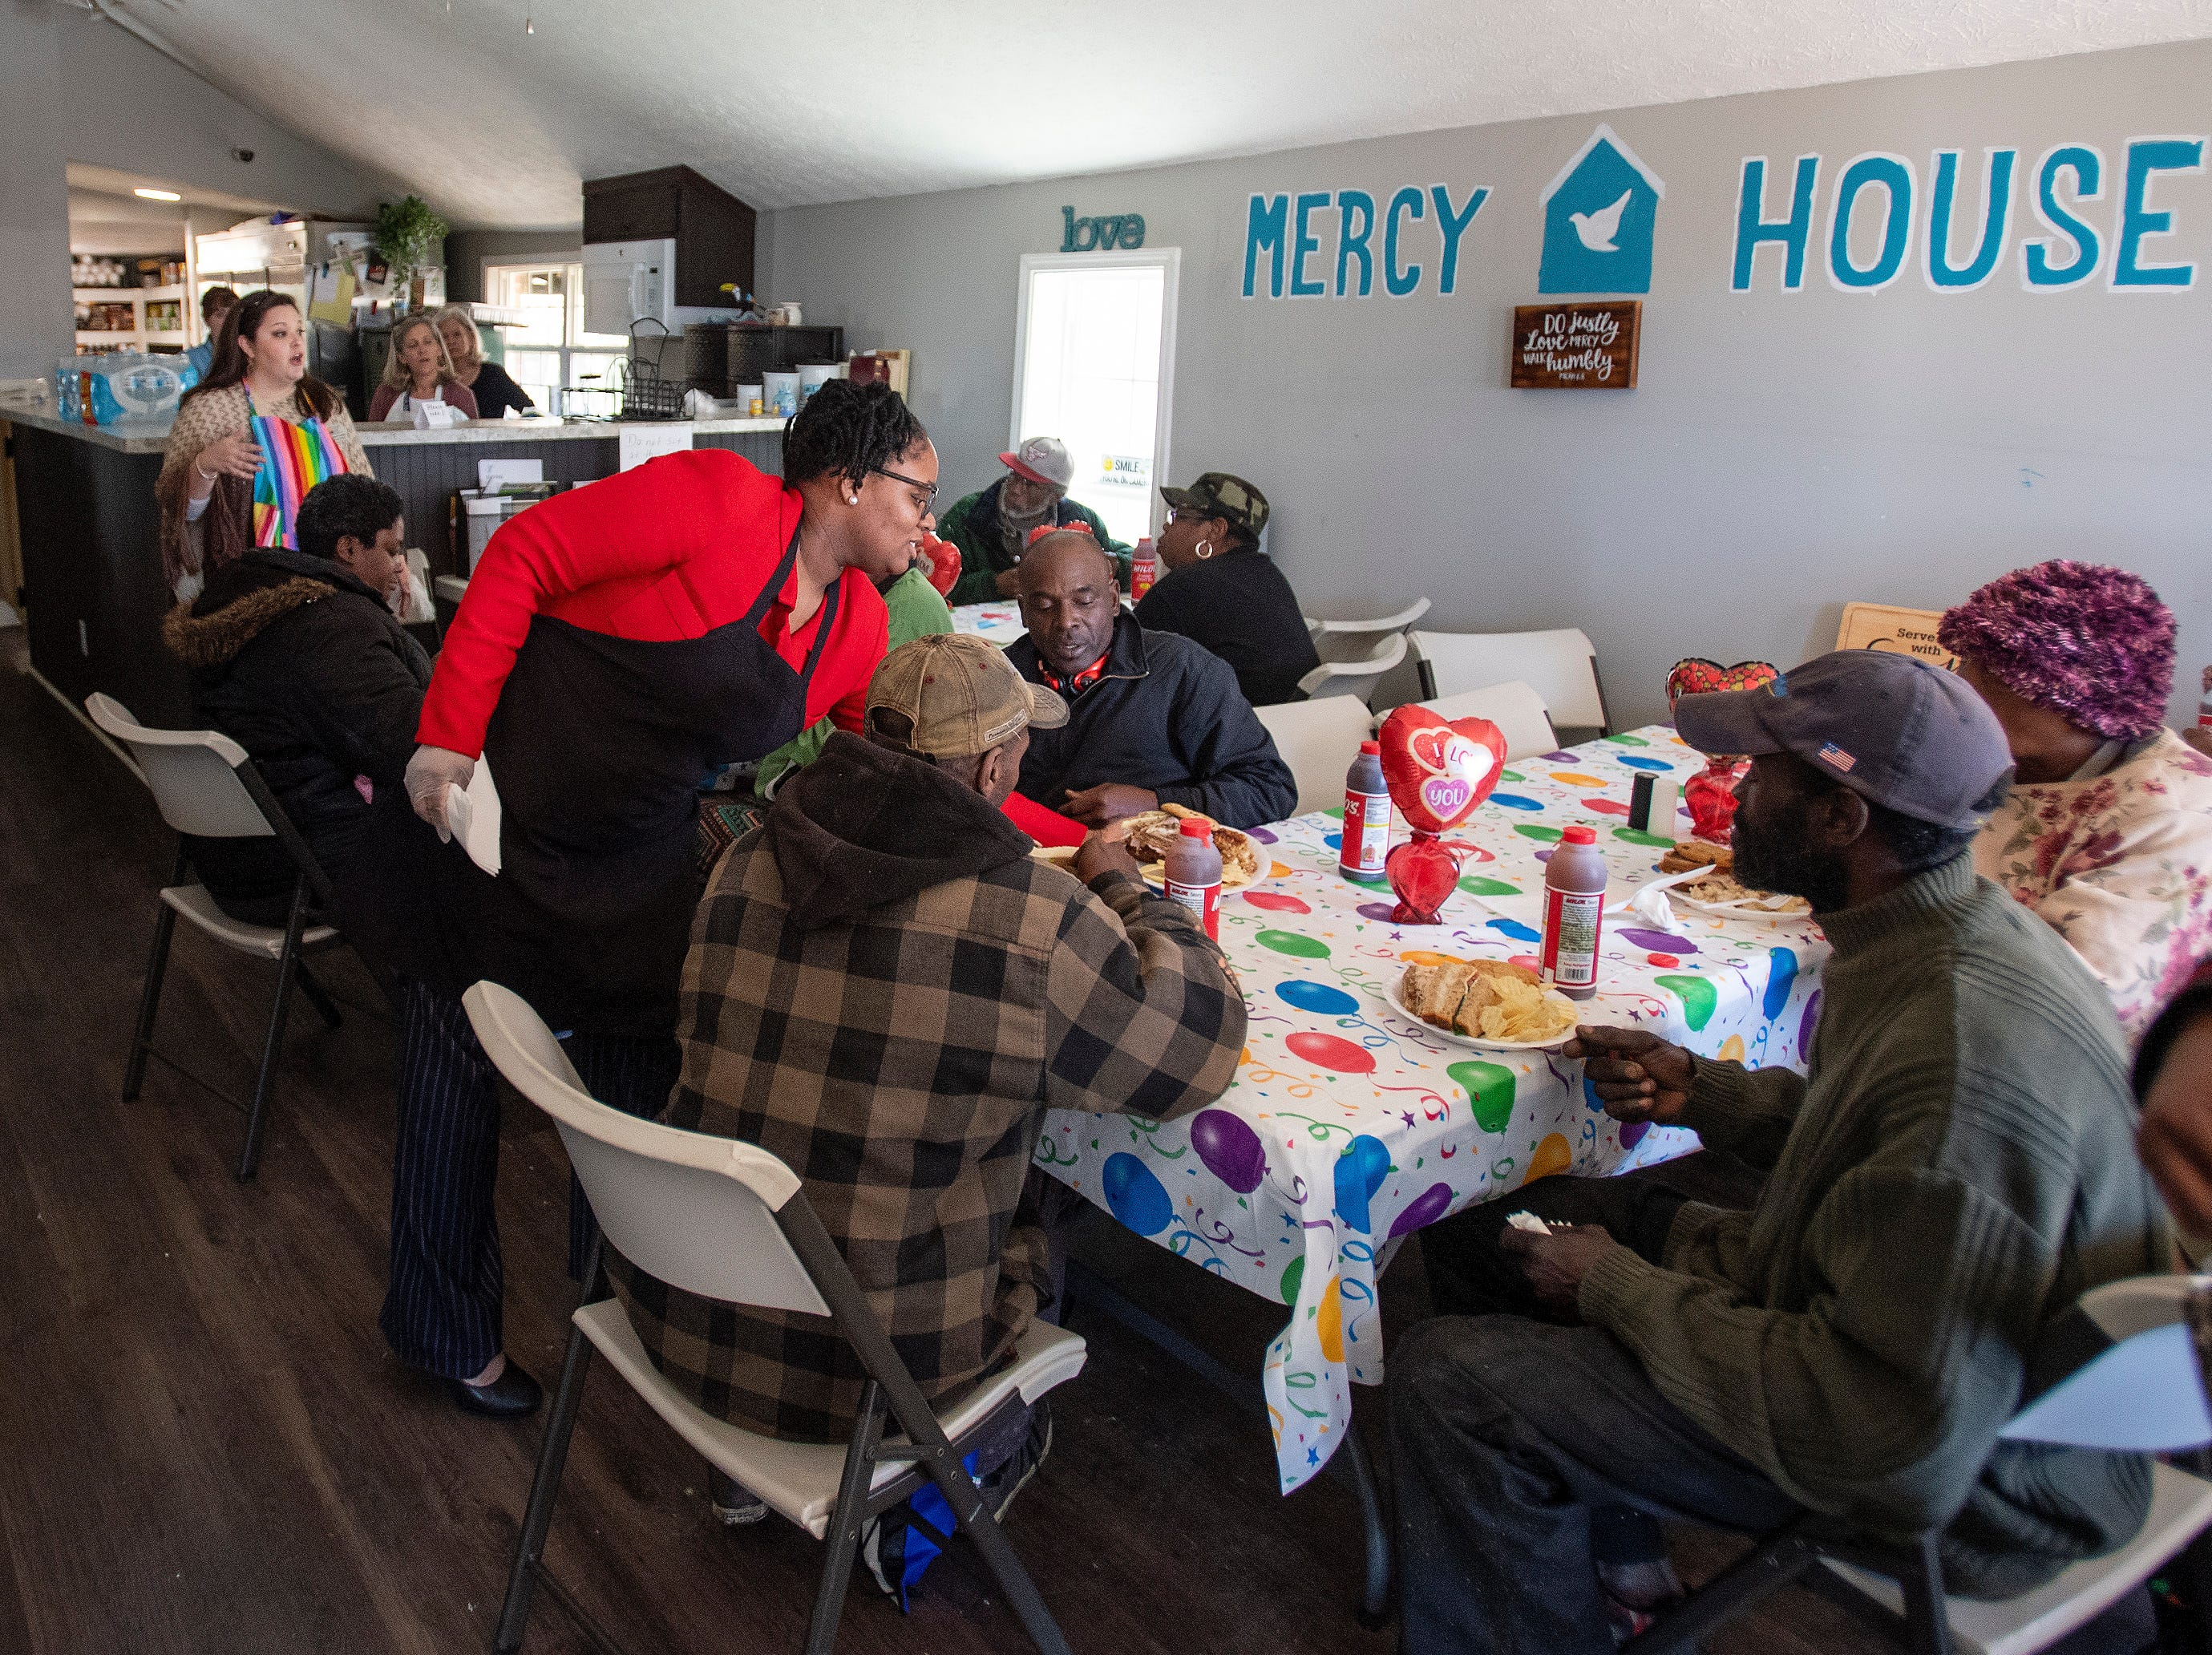 Volunteers help feed members of the community at Mercy House in Montgomery, Ala., on Wednesday February 13, 2019.